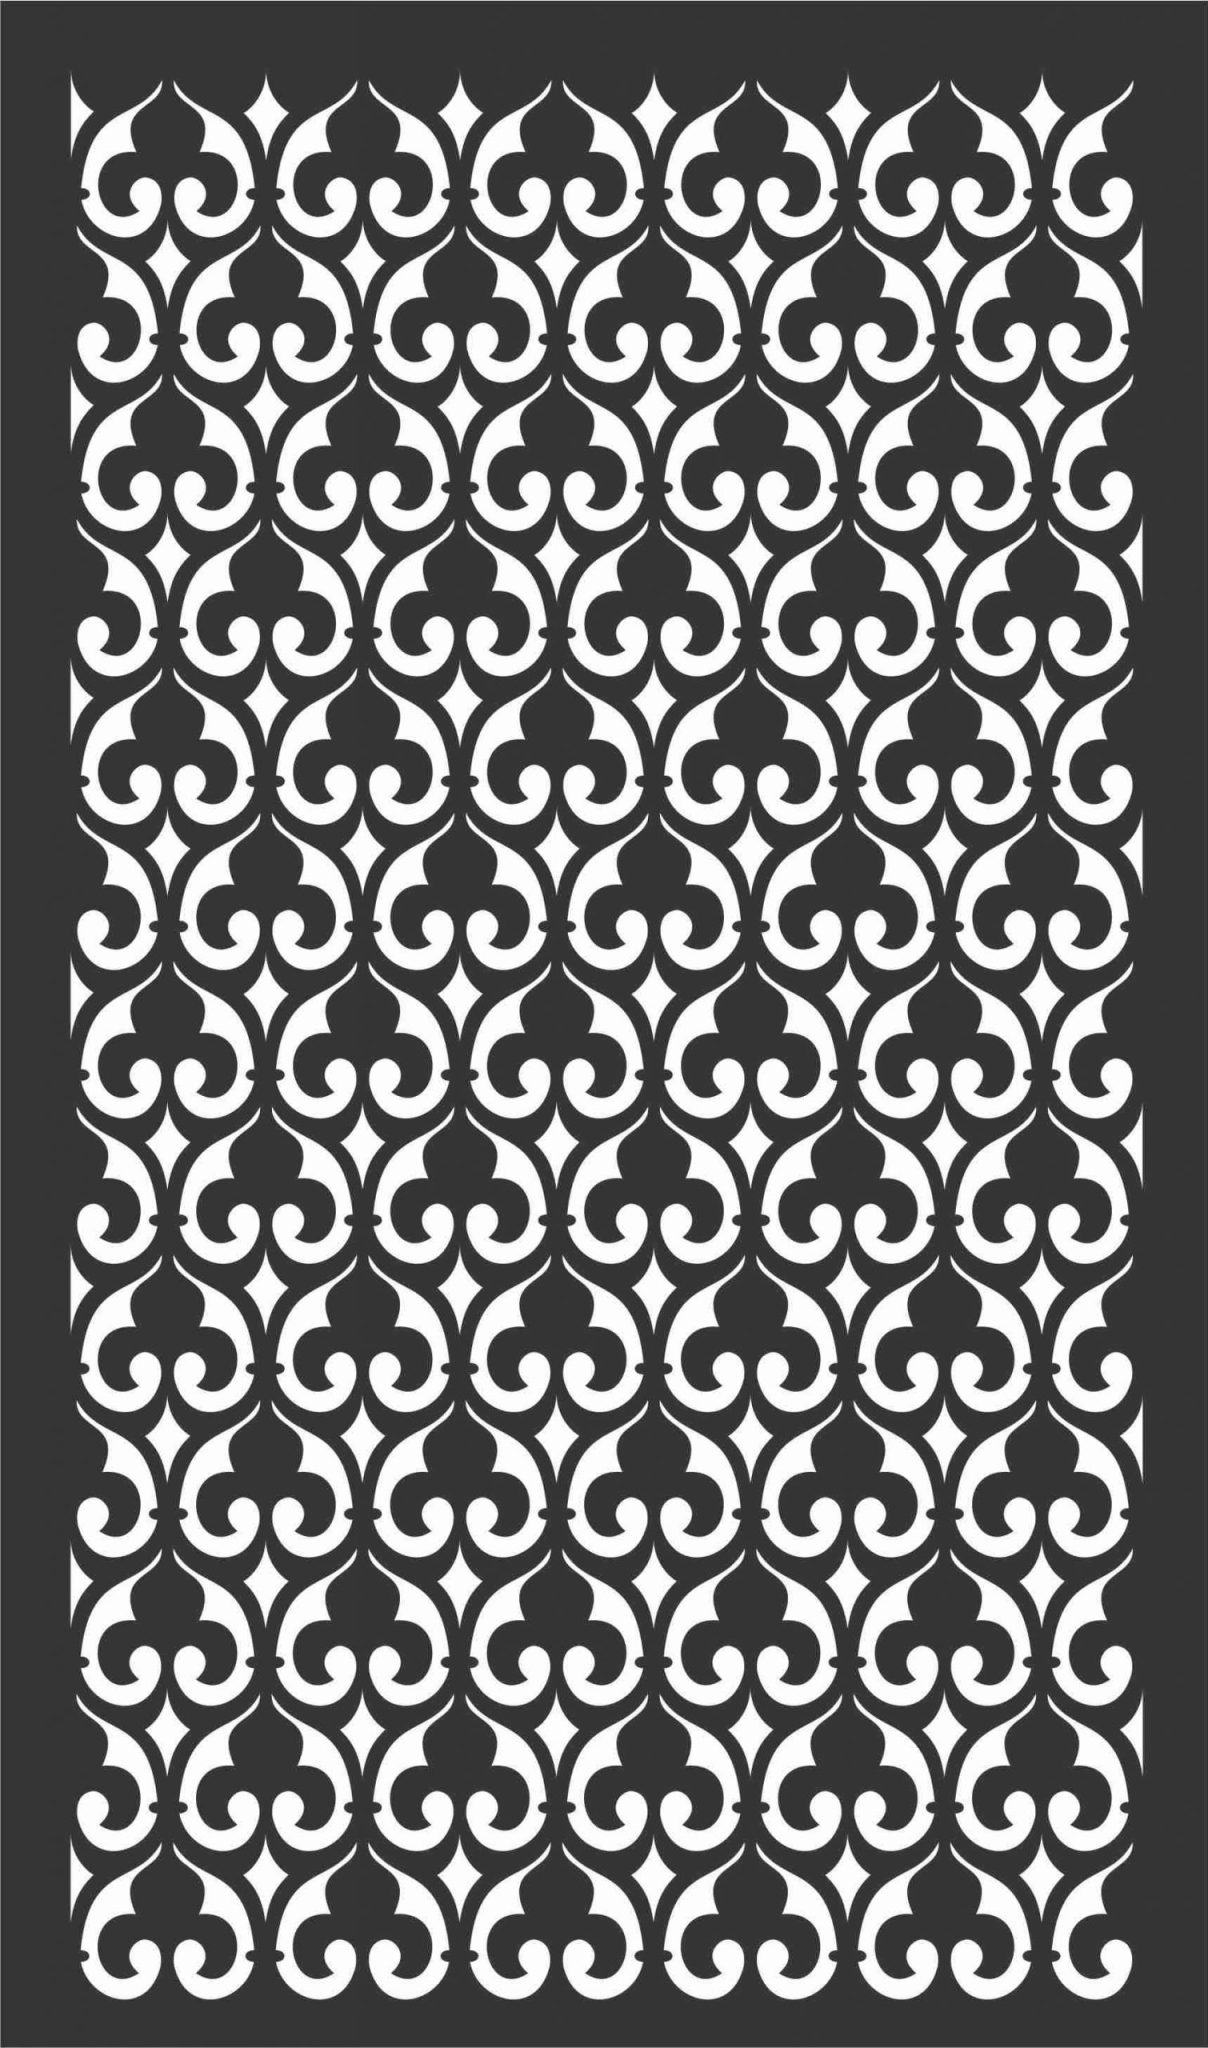 Floral Screen Patterns Design 33 Free DXF File